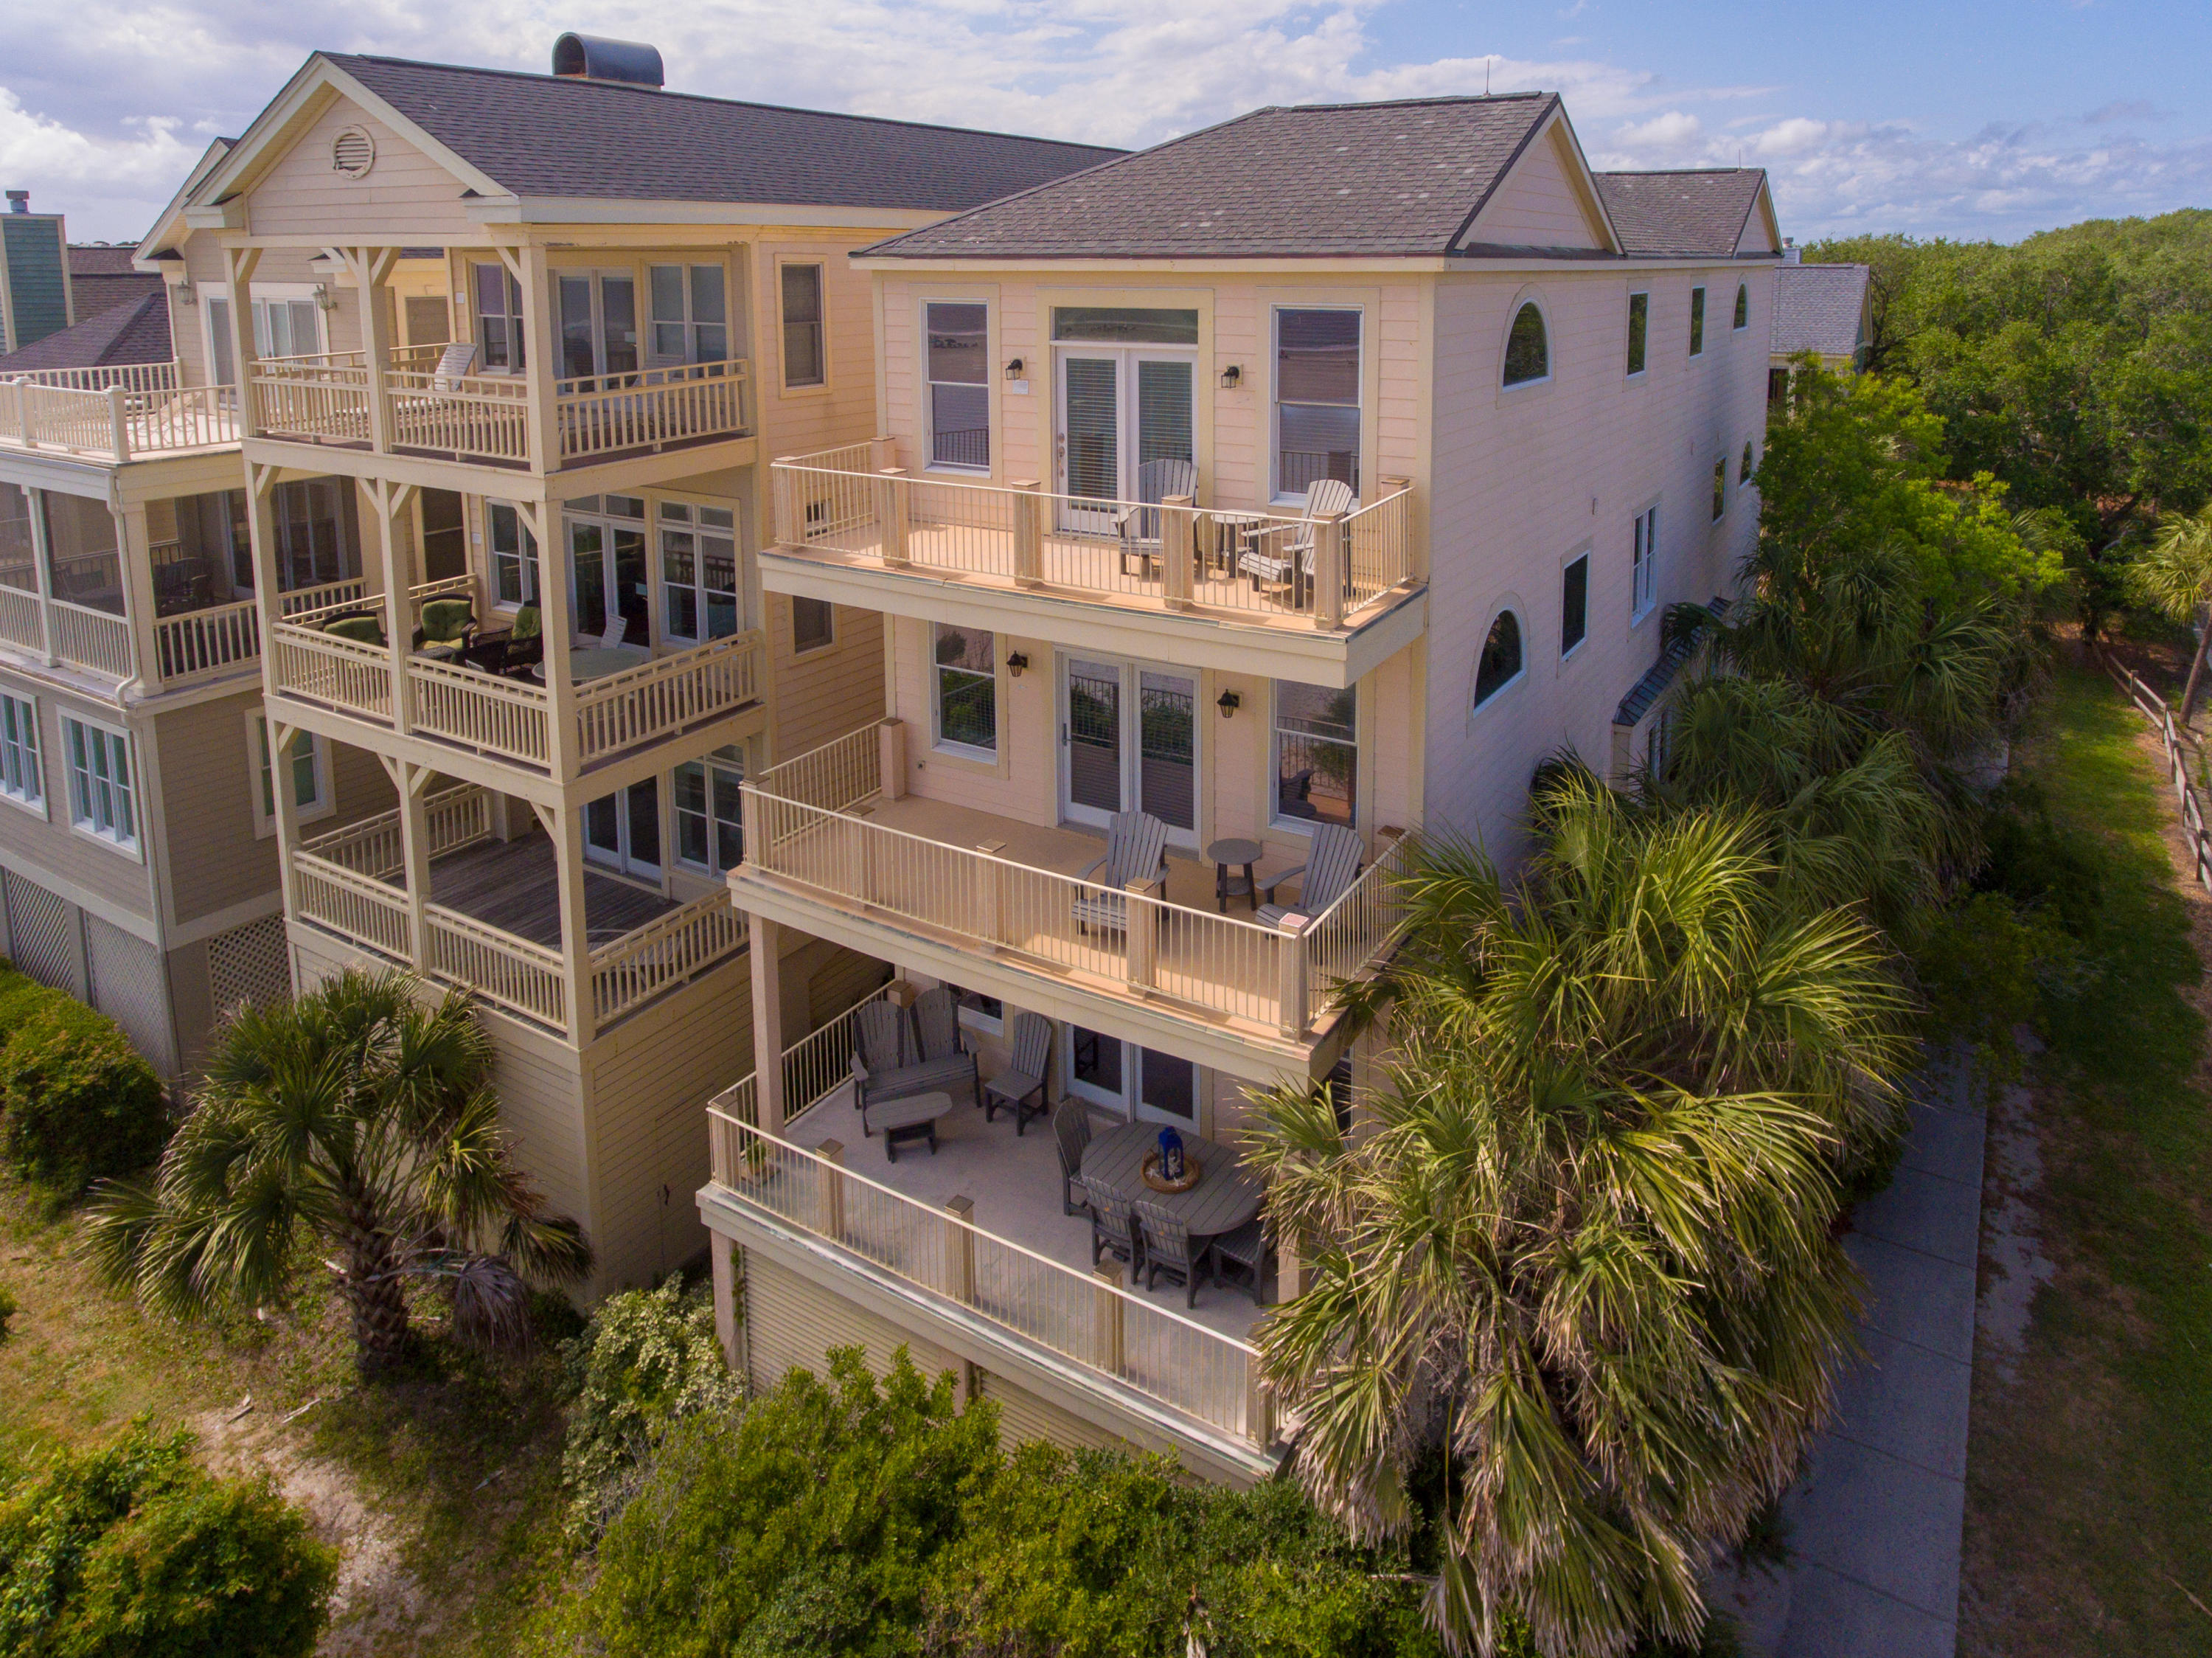 Wild Dunes Homes For Sale - 64 Grand Pavilion, Isle of Palms, SC - 14